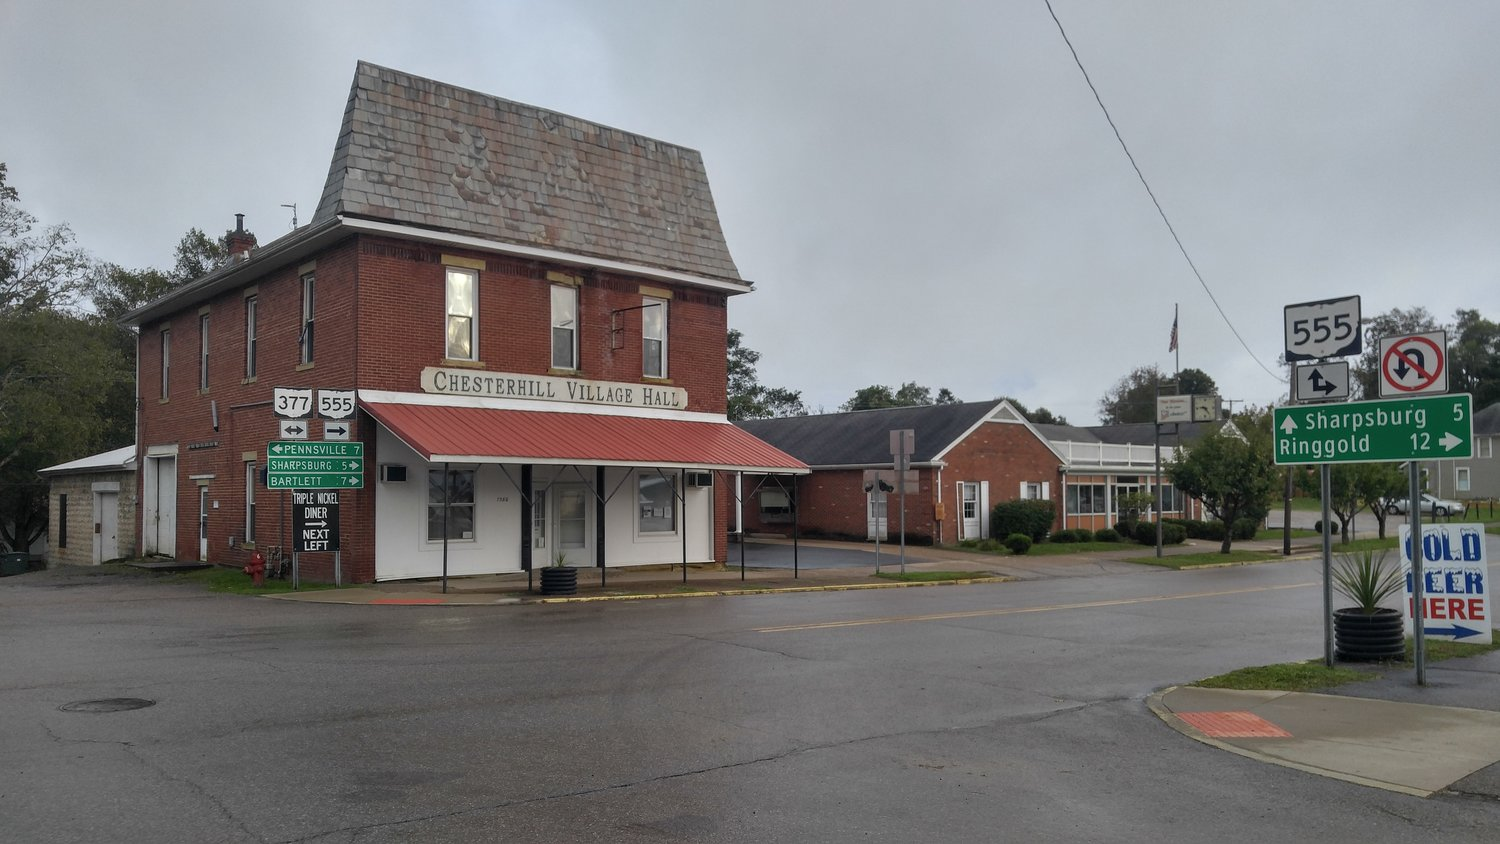 The Chesterhill Village Hall is wher community leaders chose to progress.